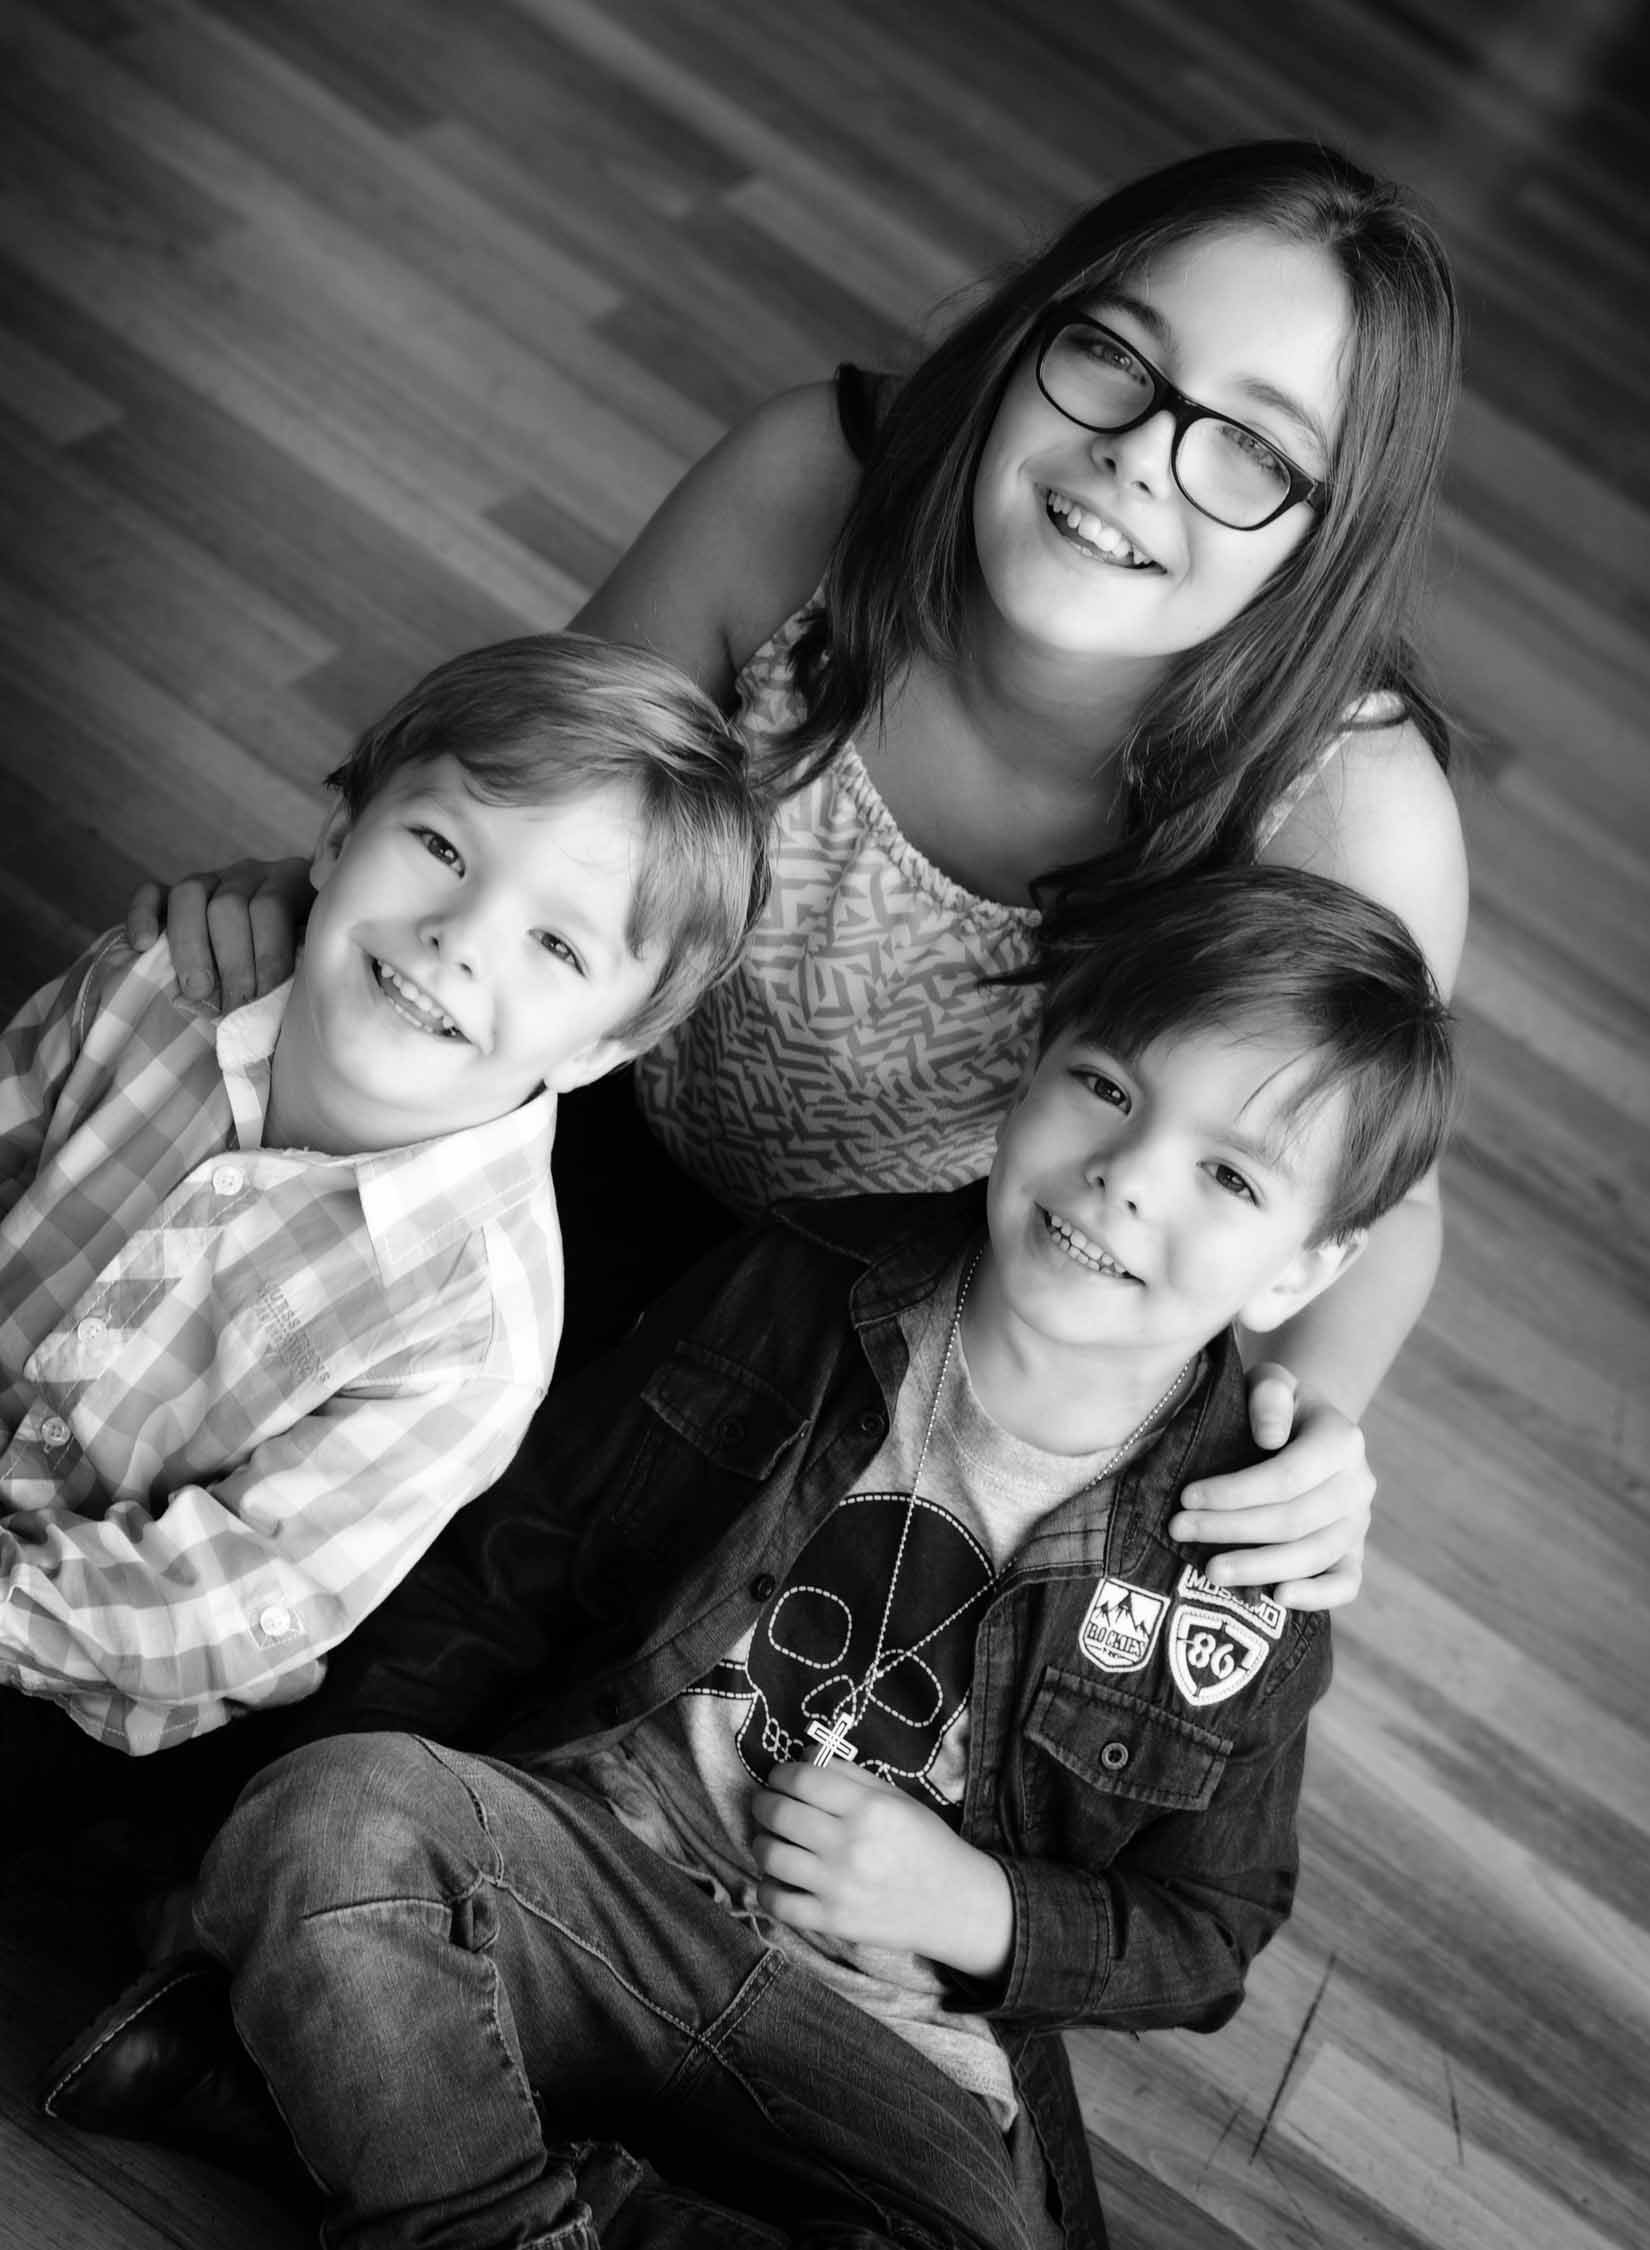 Brothers and elder sister portrait